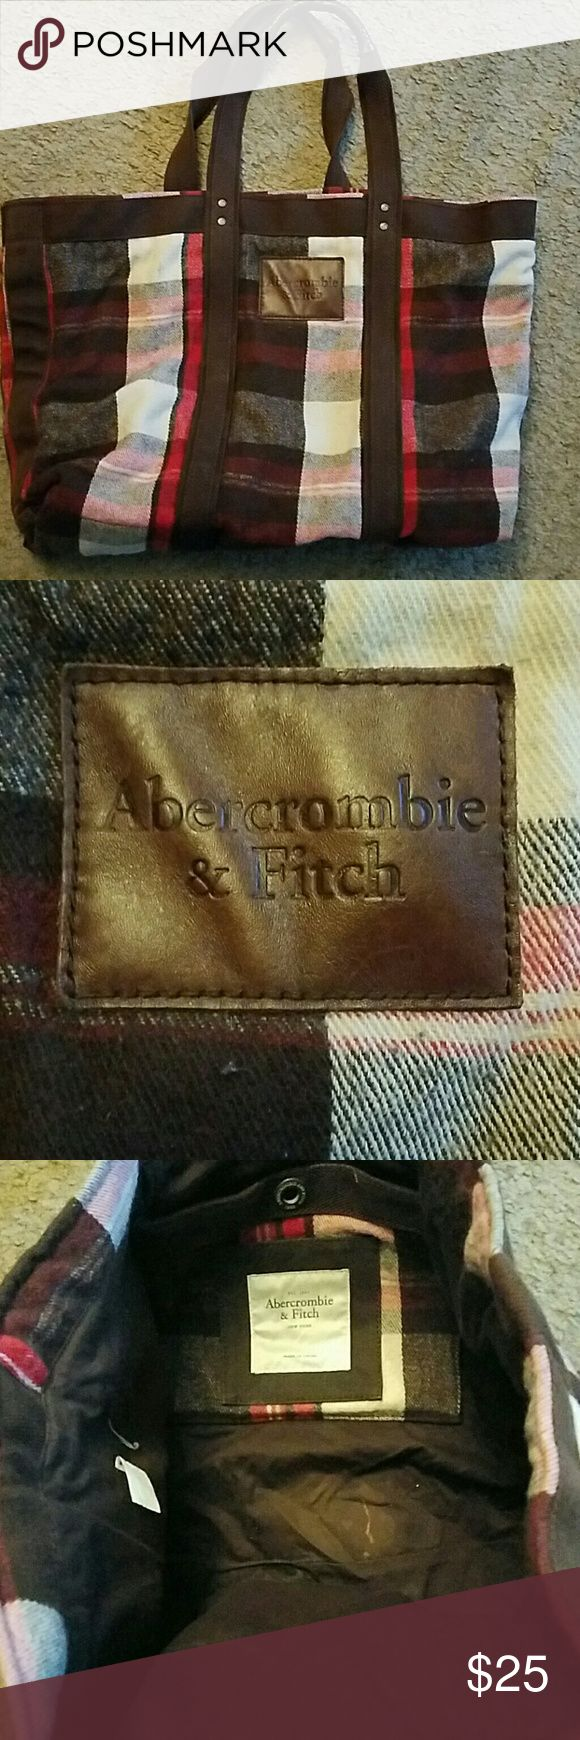 "Abercrombie and Fitch bag 24"" long 17"" tall and can be pulled out to 24"" wide when empty. Heavy bag. Abercrombie & Fitch Bags Totes"